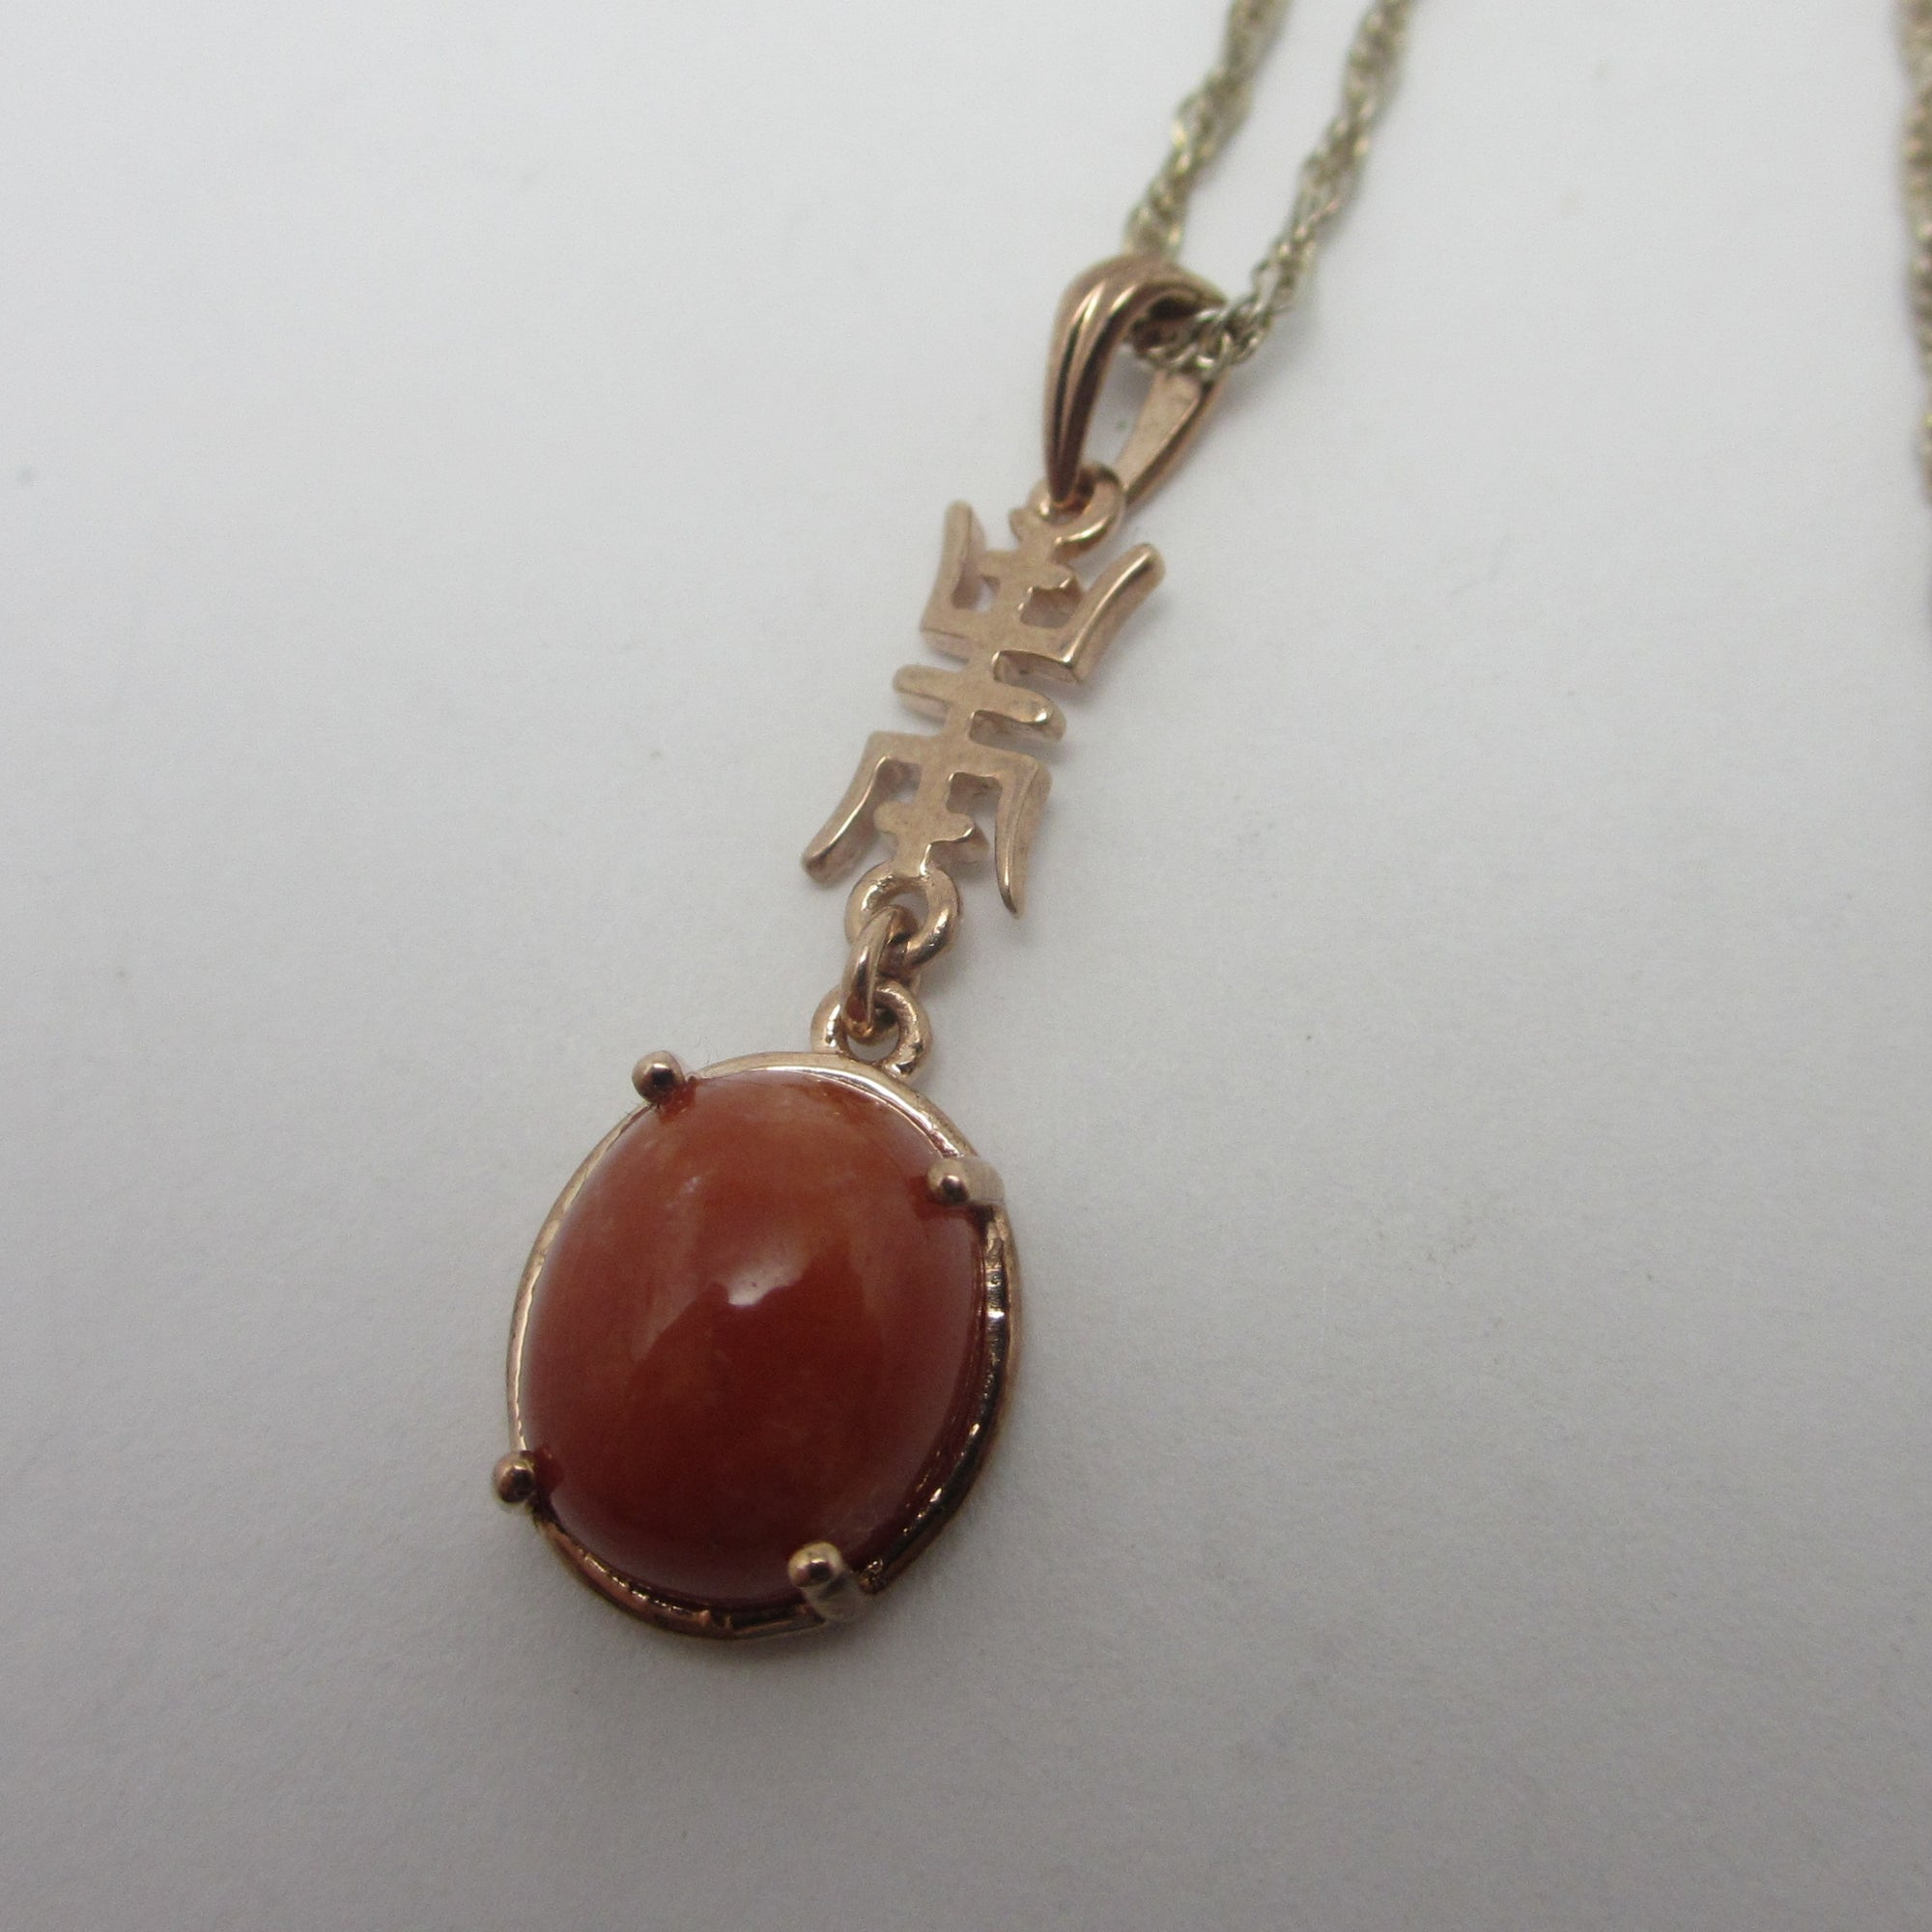 Chinese Agate Sterling Silver Gilt Longevity Pendant Necklace Vintage c1980